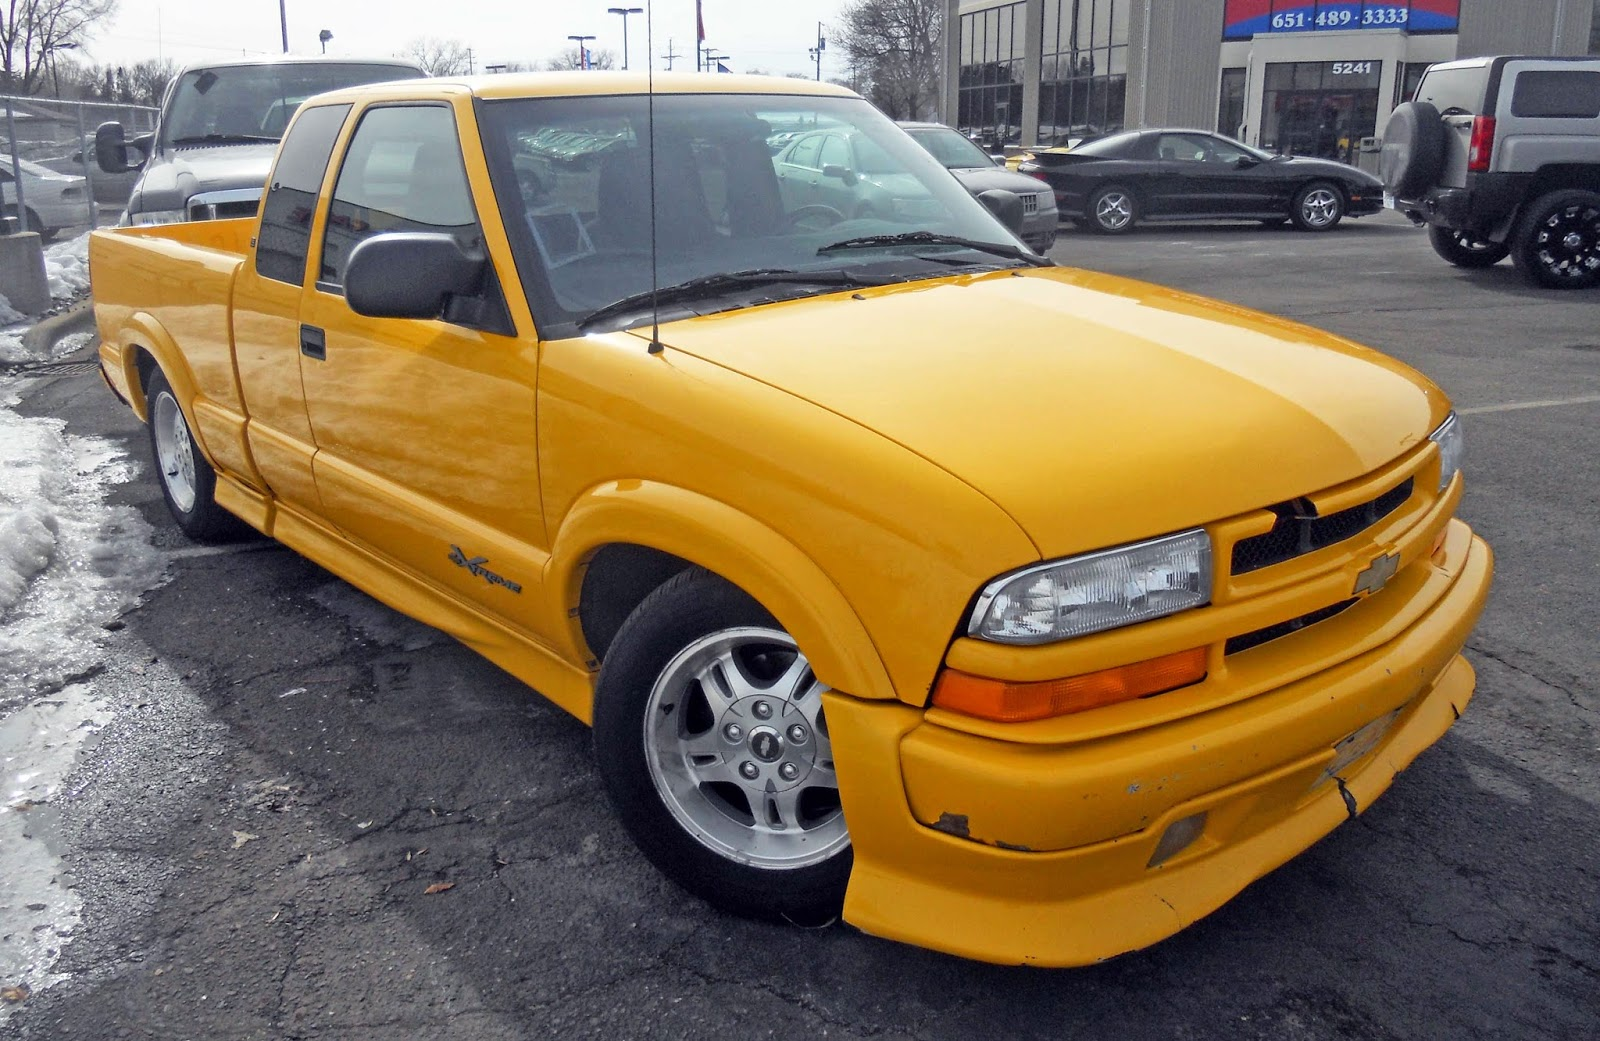 This eye catching little rig is a 2002 Chevy S-10 Xtreme. Consider it ...